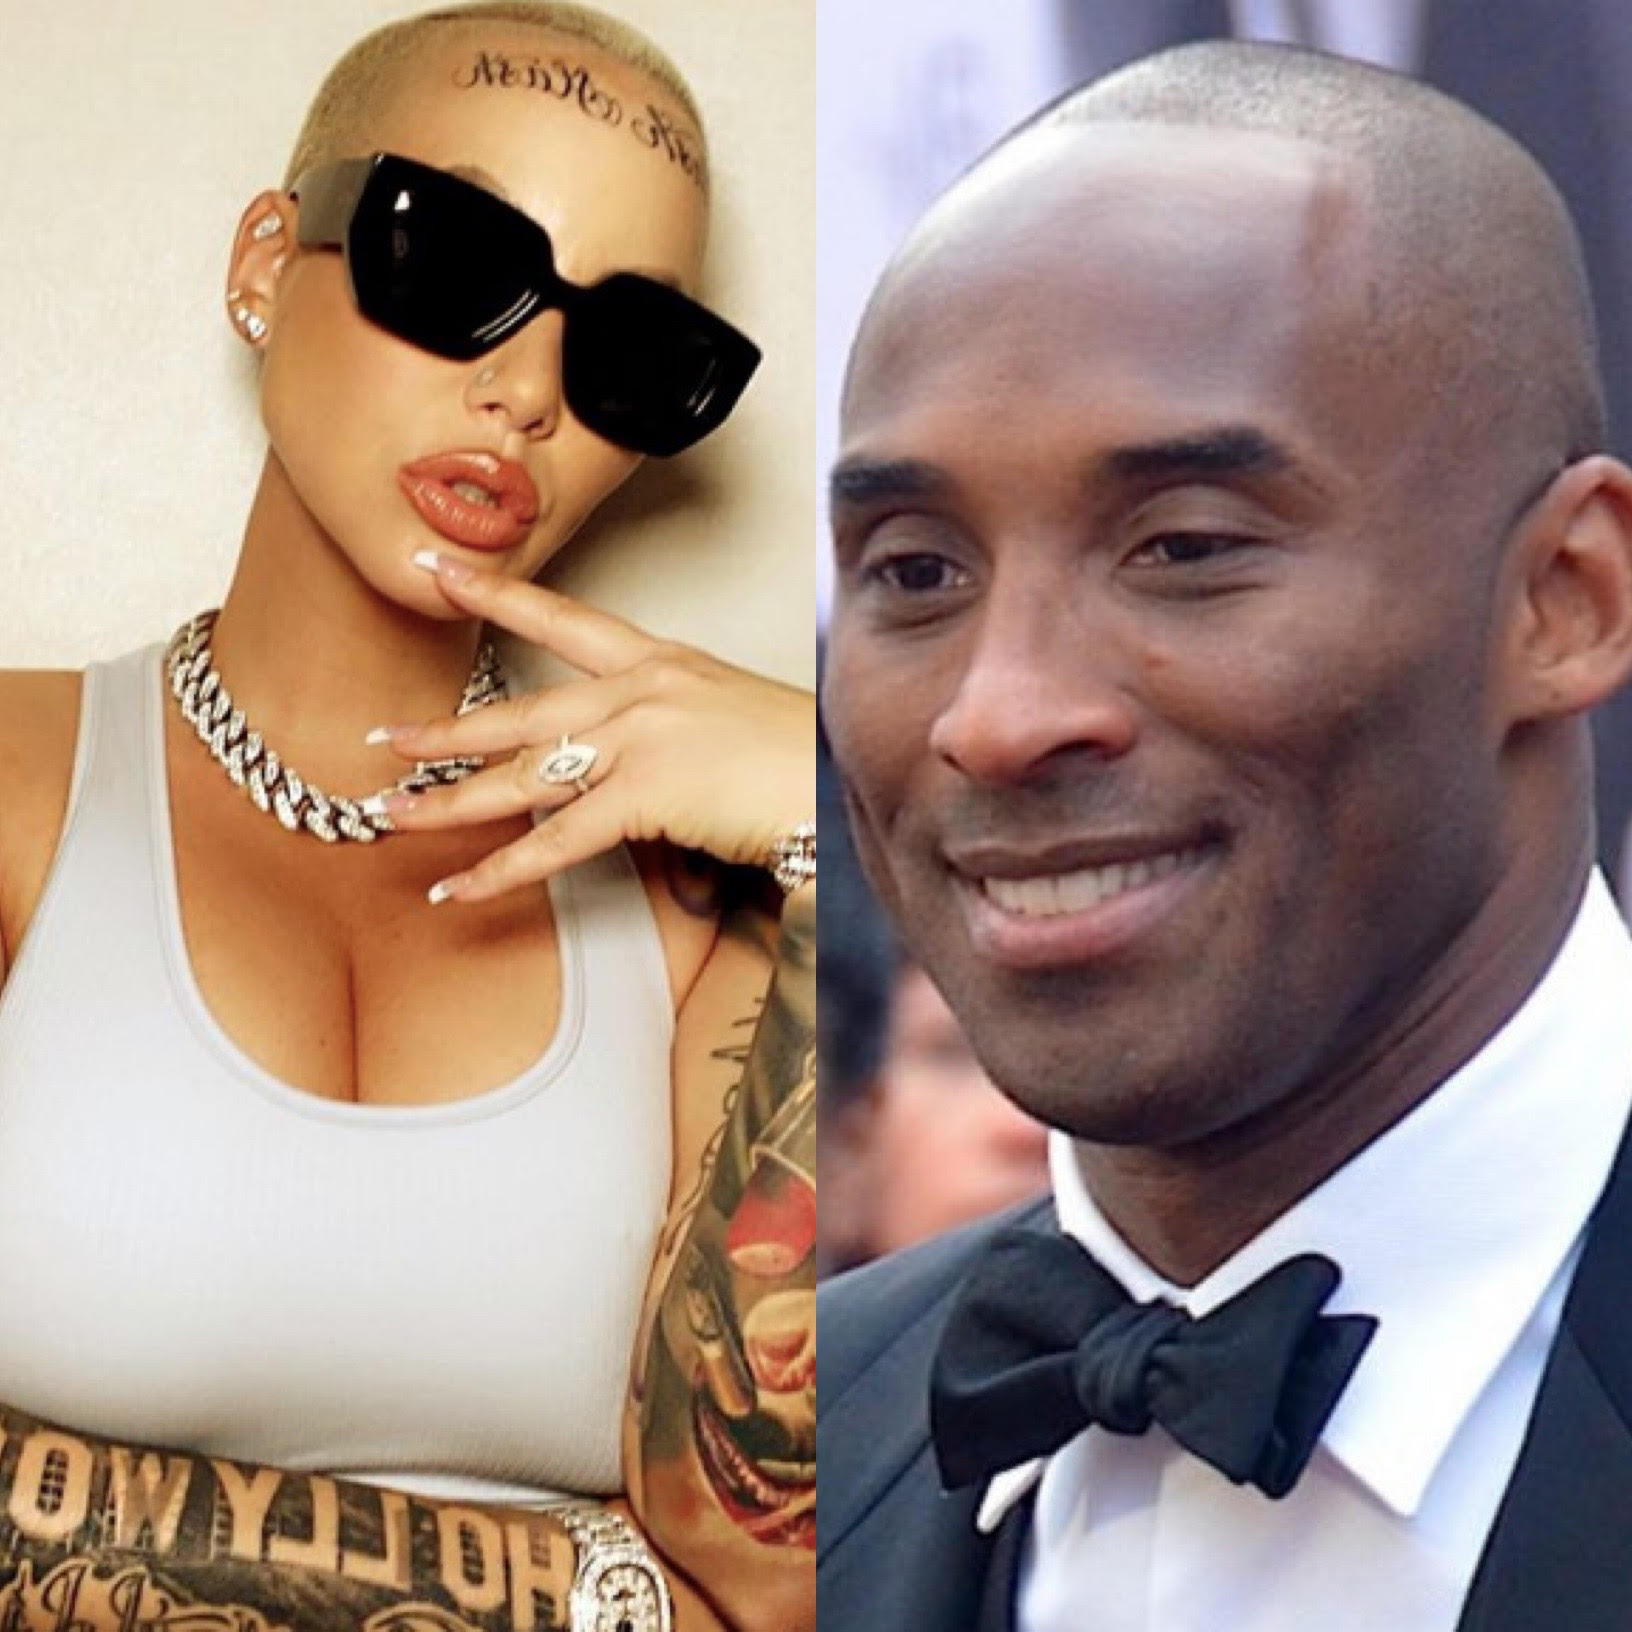 Amber Rose explains how Kobe Bryant's death inspired her new face tattoo